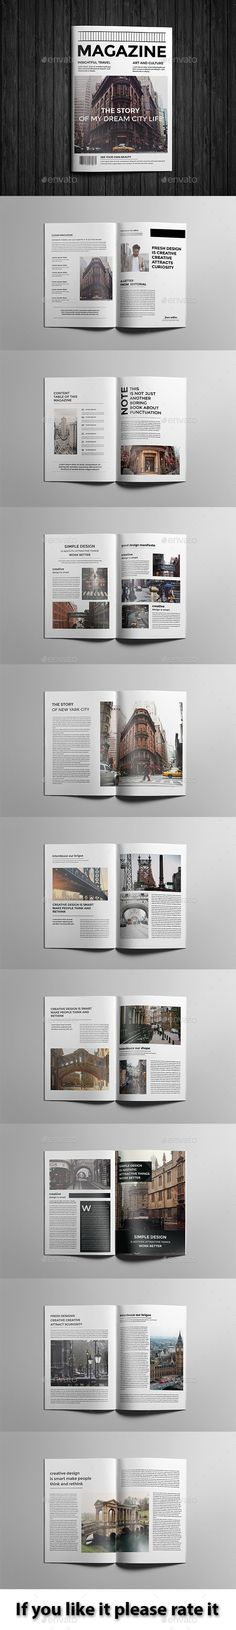 Clean Magazine Design_03 — Photoshop PSD #business #customizable • Available here → https://graphicriver.net/item/clean-magazine-design_03/12955729?ref=pxcr